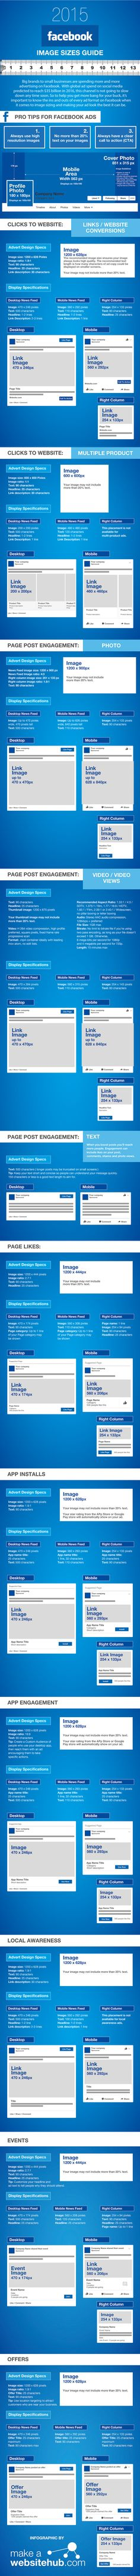 The Ultimate 2015 Facebook Image Sizes Guide #infographic #socialmedia #smm #in